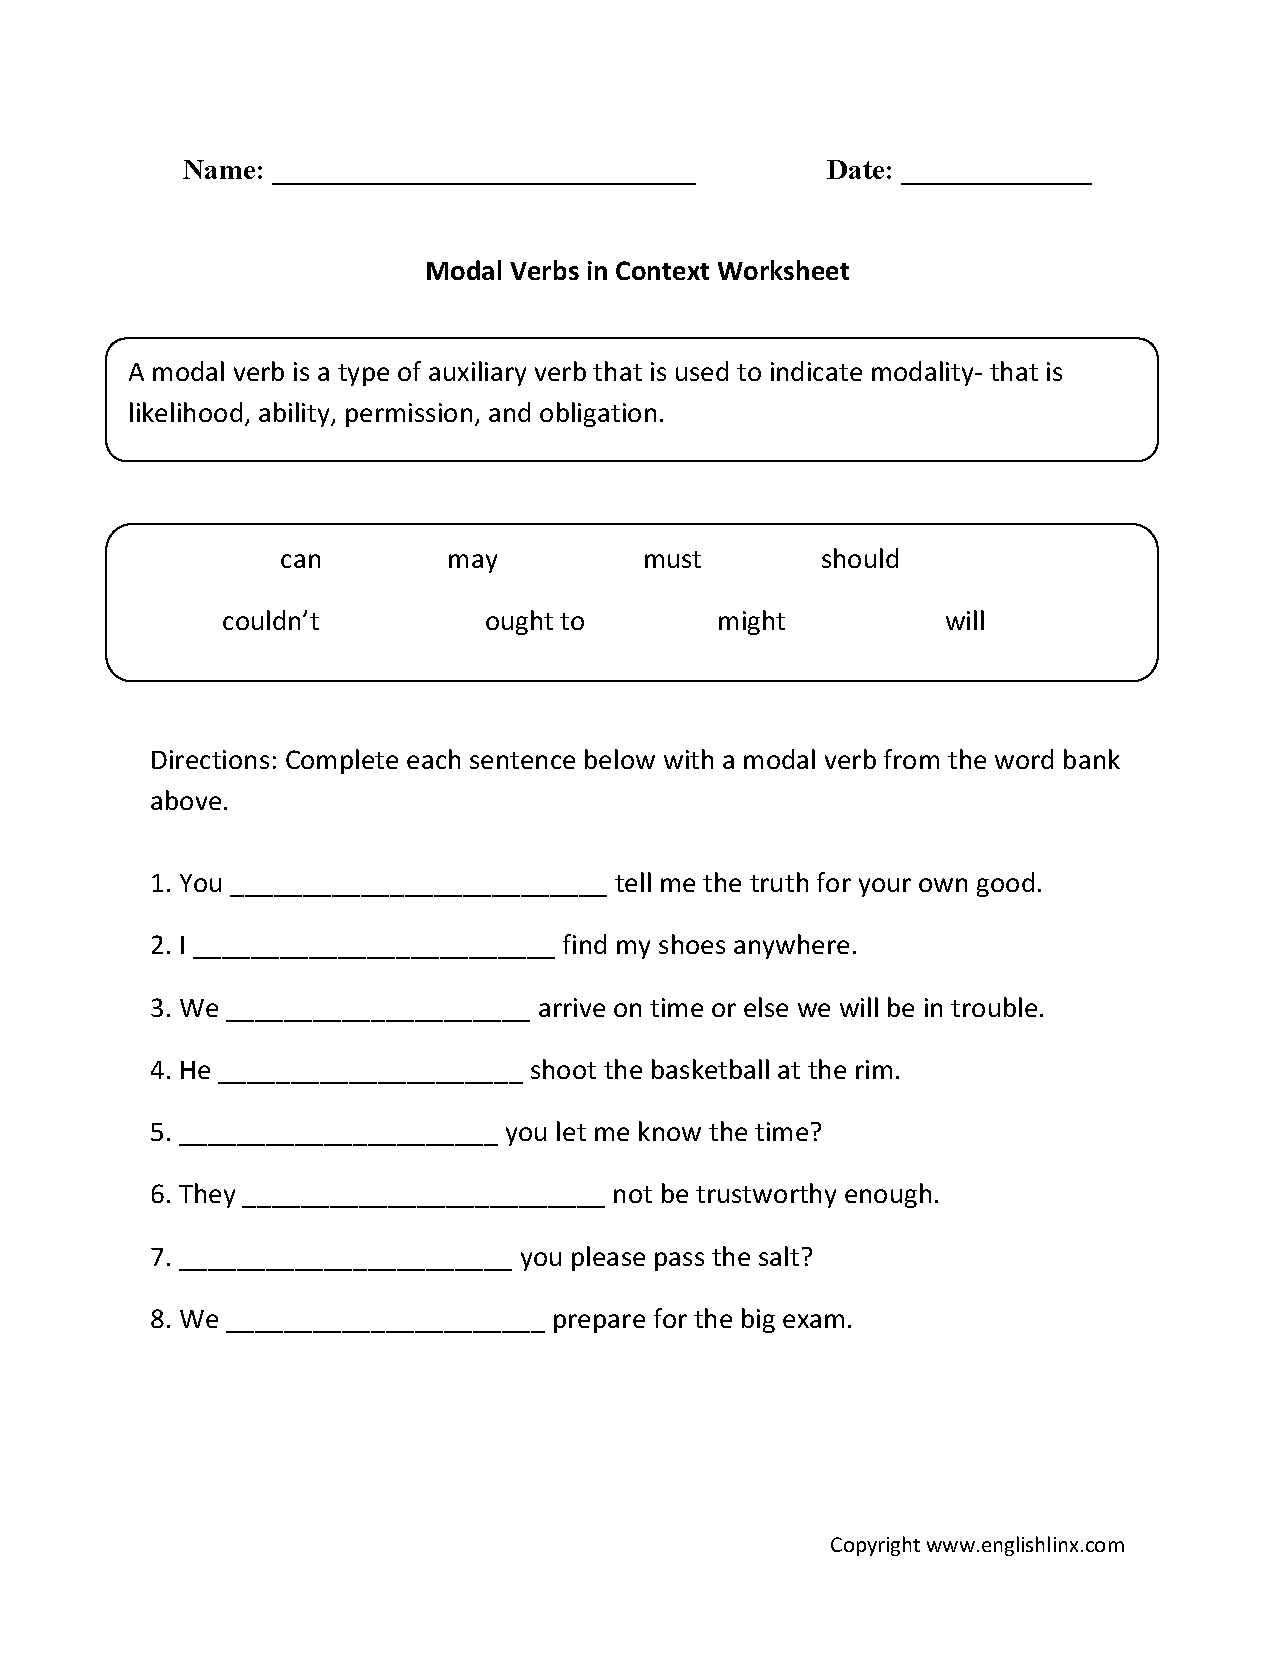 Worksheet Verbs Worksheet englishlinx com verbs worksheets modal worksheets